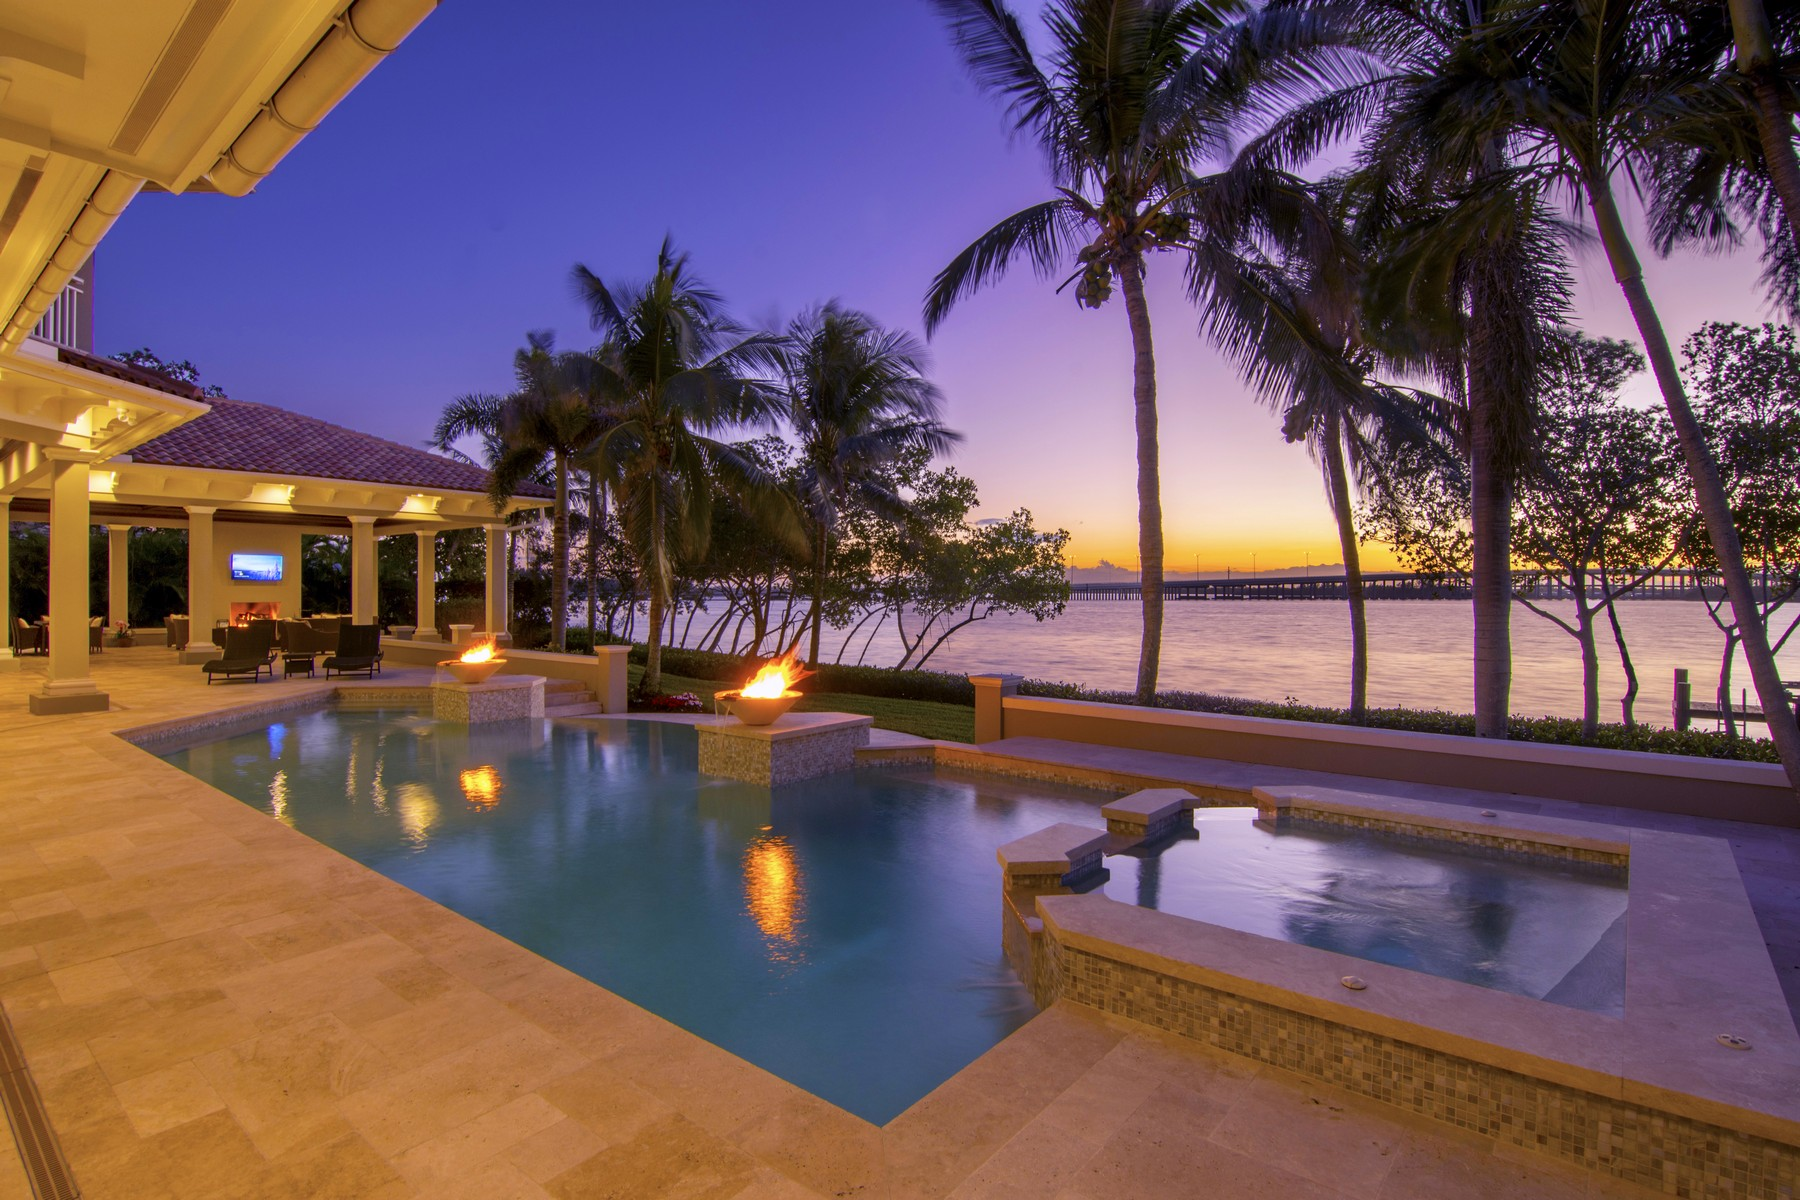 Inarguably the Finest Riverfront Estate in Vero Beach 665 Lake Drive Vero Beach, Florida 32963 United States